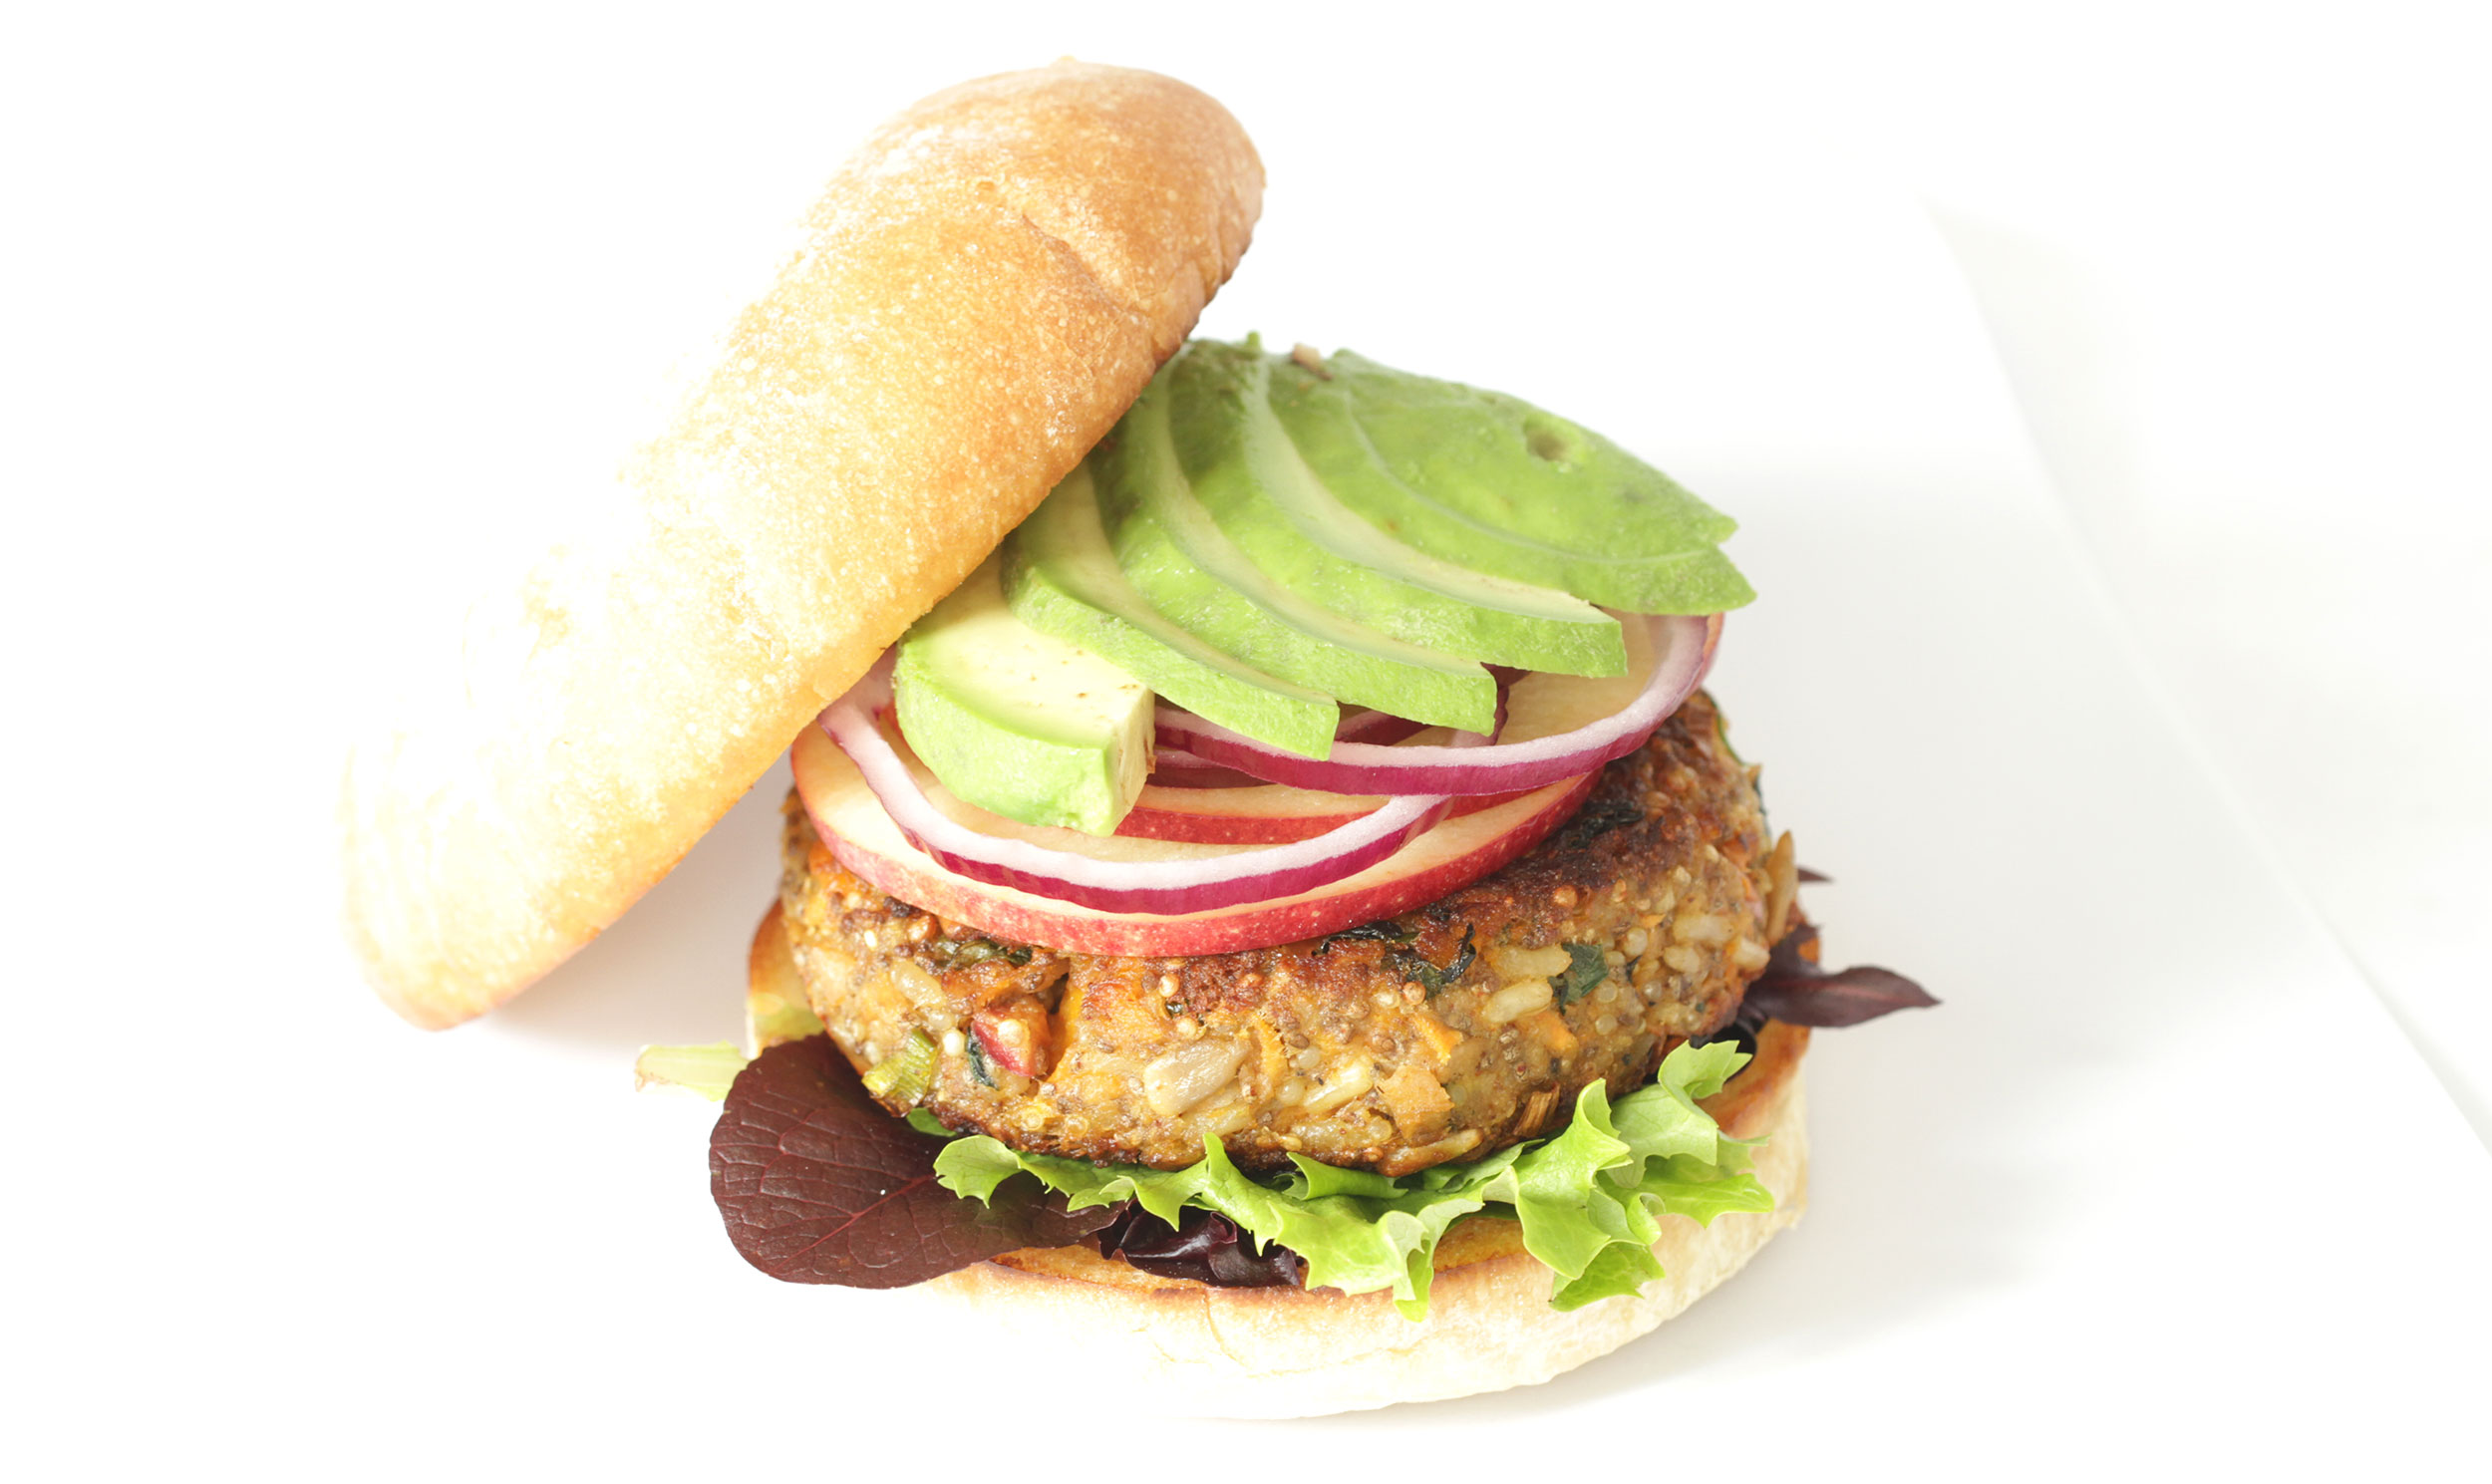 the Soul Patty & The Soul Solutions Vegan Gluten Free Dry Mix